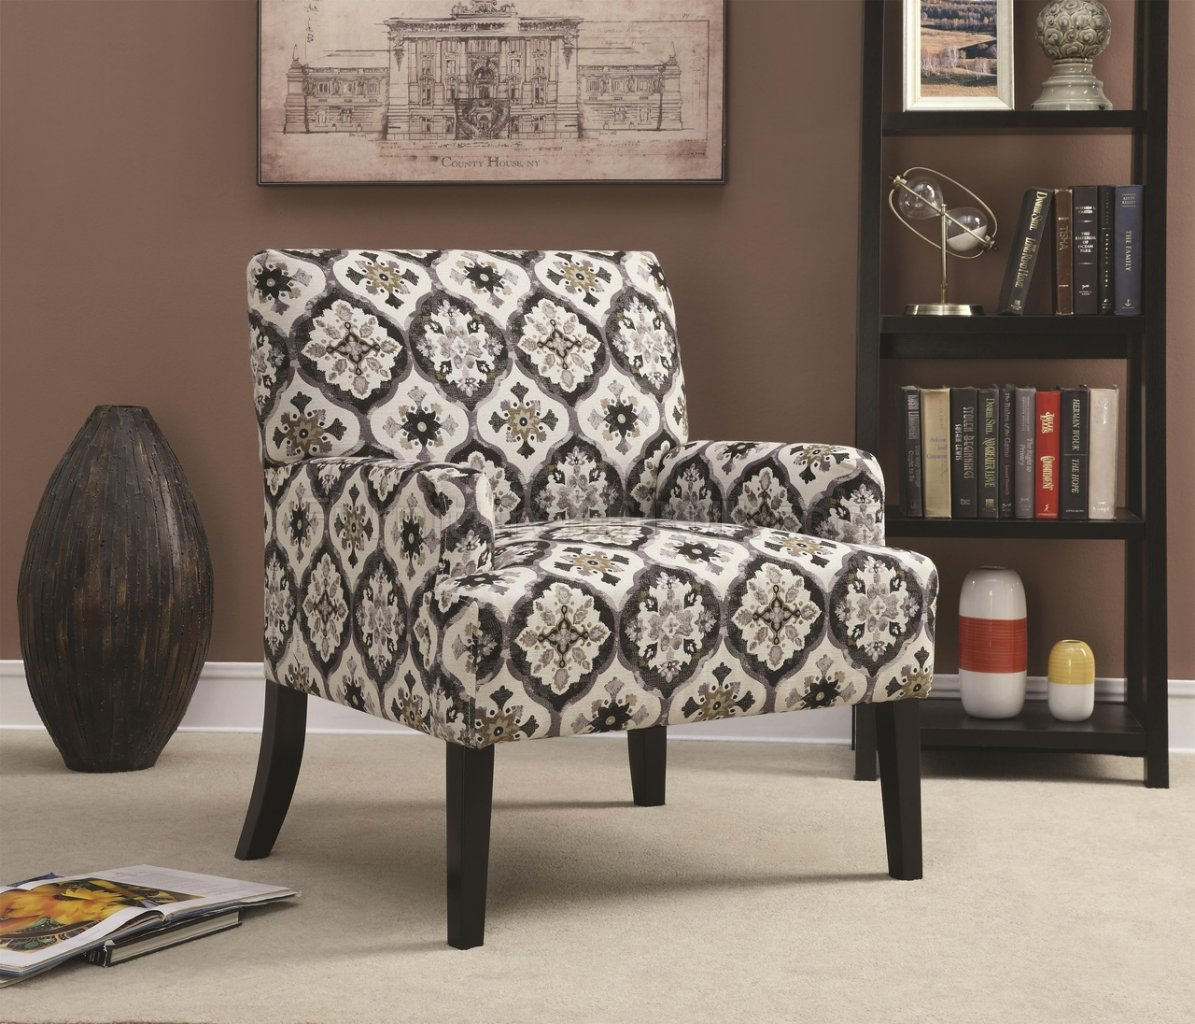 902621 Accent Chair Set Of 2 In Printed Fabric By Coaster